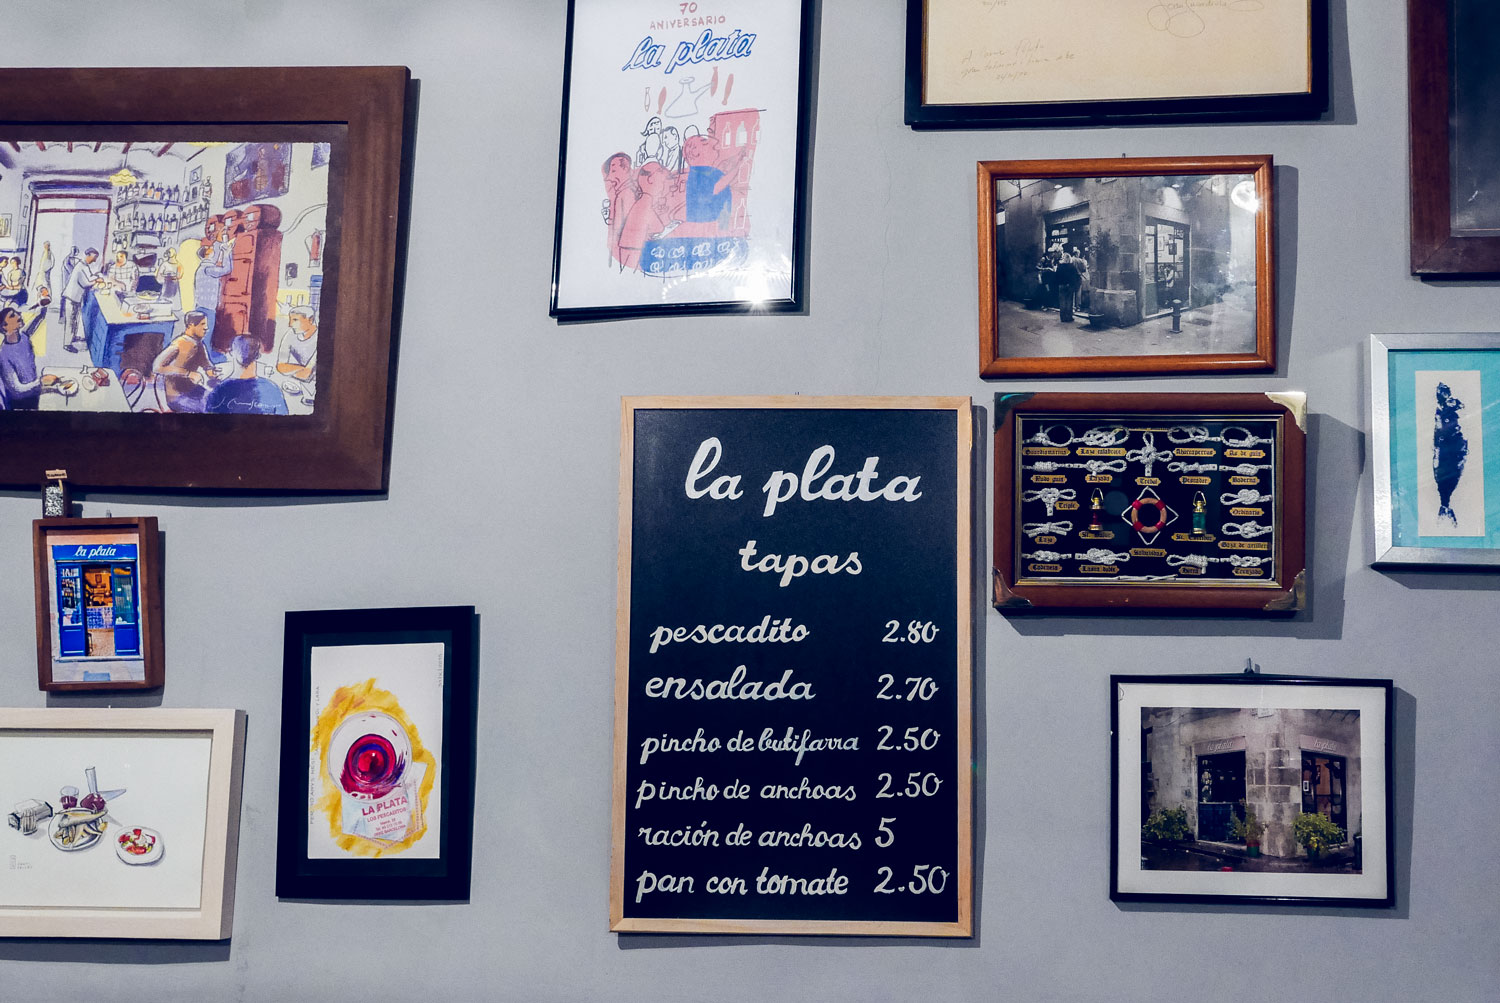 Spain Barcelona Tapas bar la plata menu